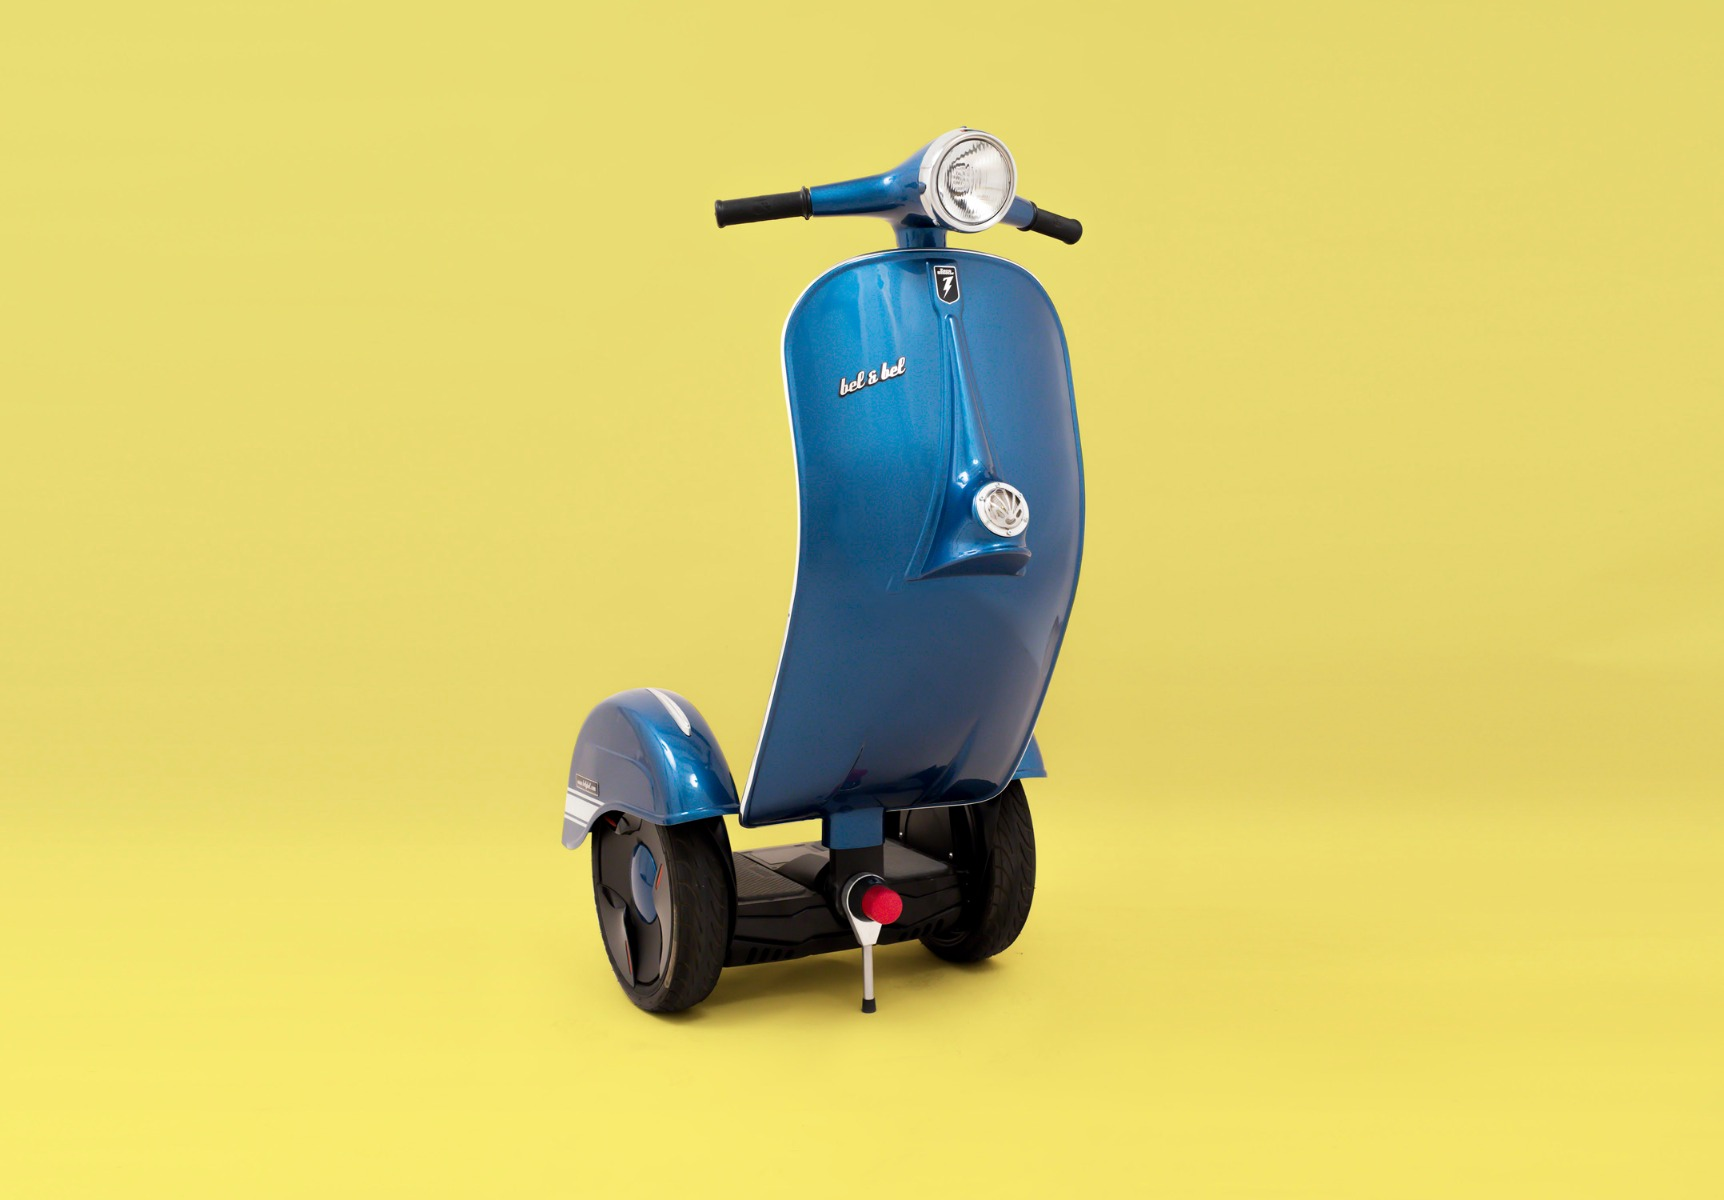 Blue Bel & Bel Scooter